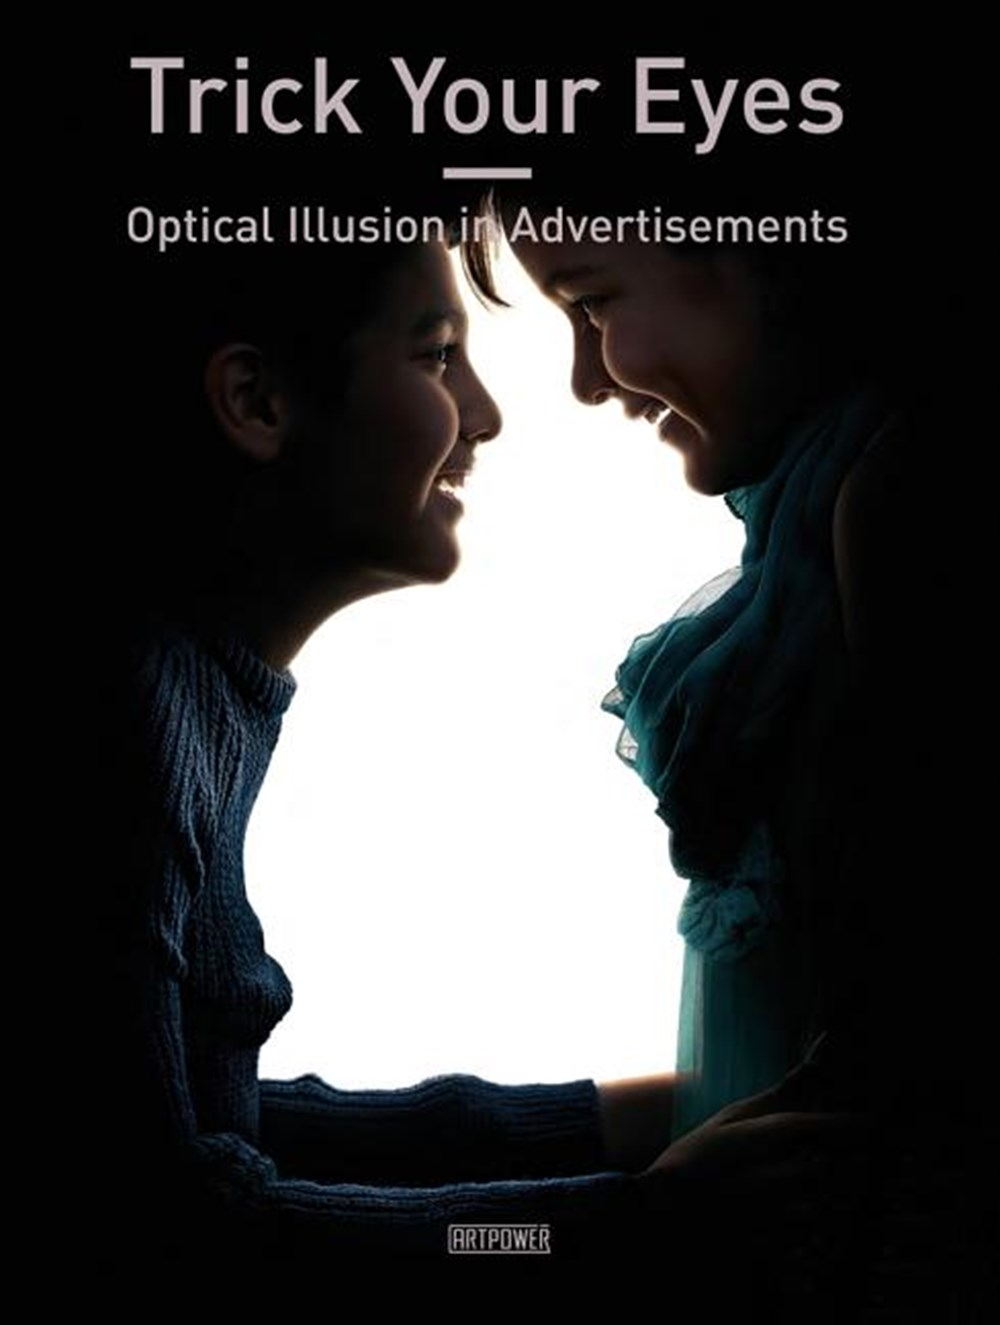 Trick Your Eyes Optical Illusion in Advertisements